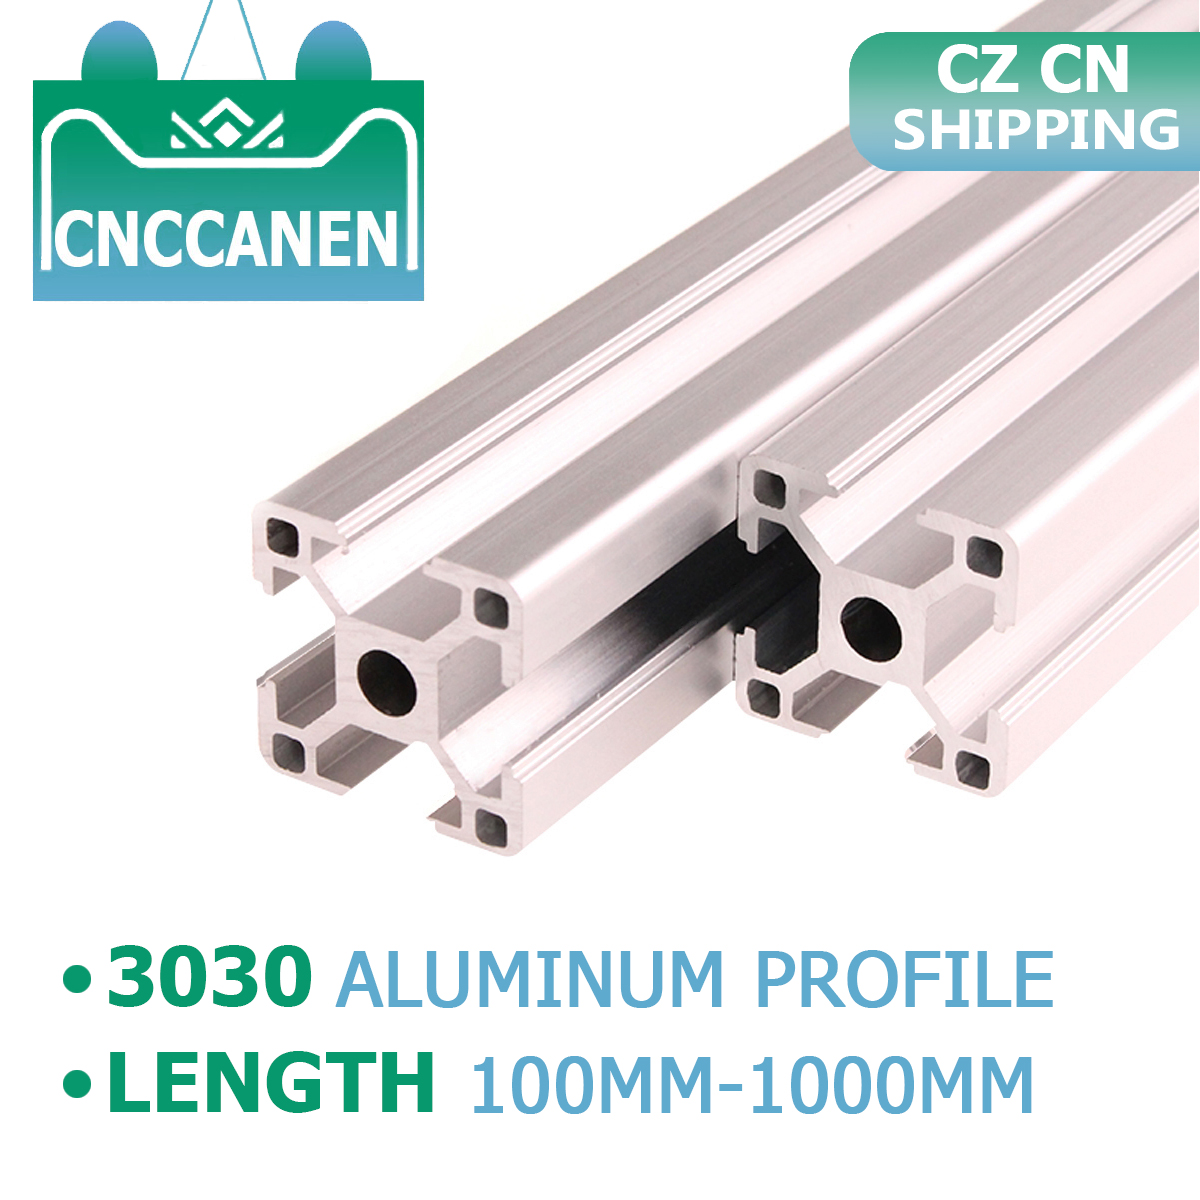 CZ CN Shipping 2PCS 3030 Aluminum Profile Extrusion 100mm-1000mm Length European Standard Anodized For CNC 3D Printer Parts DIY